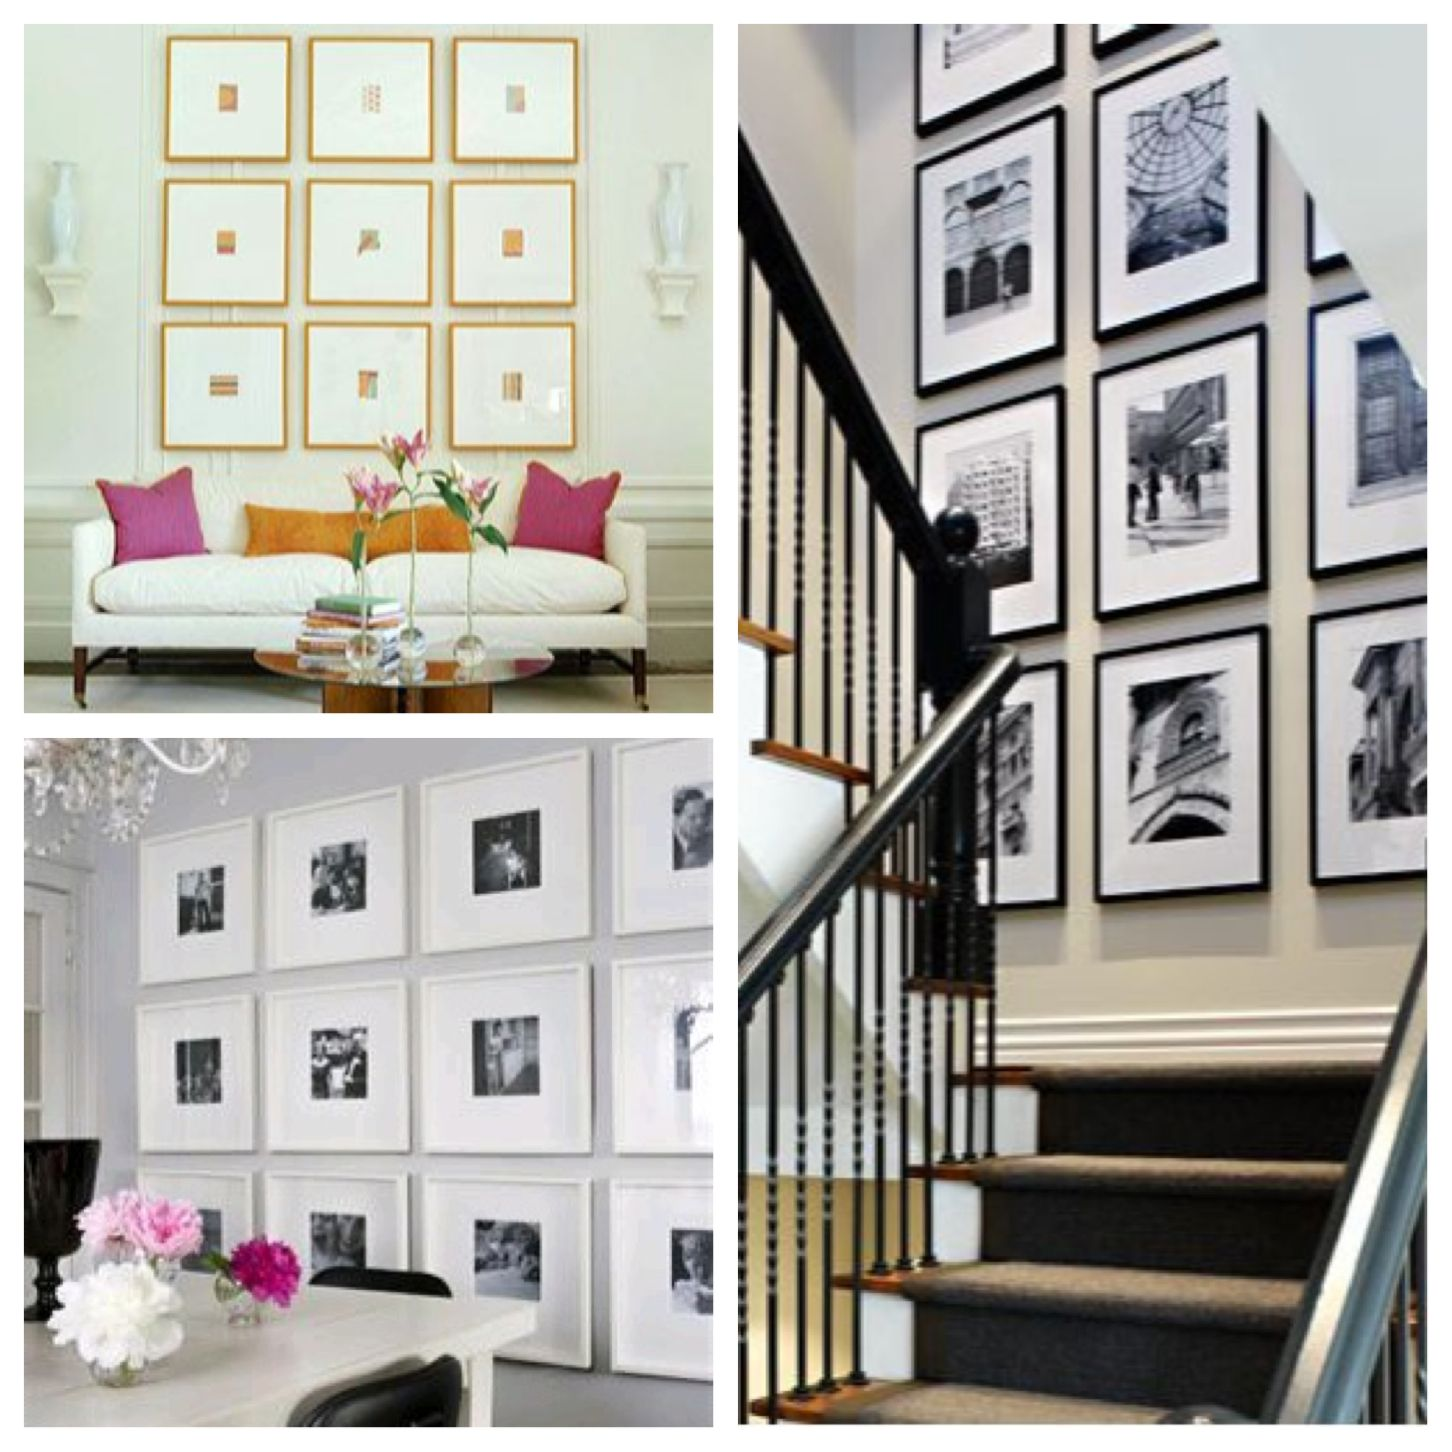 Gallery Wall Design gallery wall | how to arrange gallery on wall? | pinterest | photo